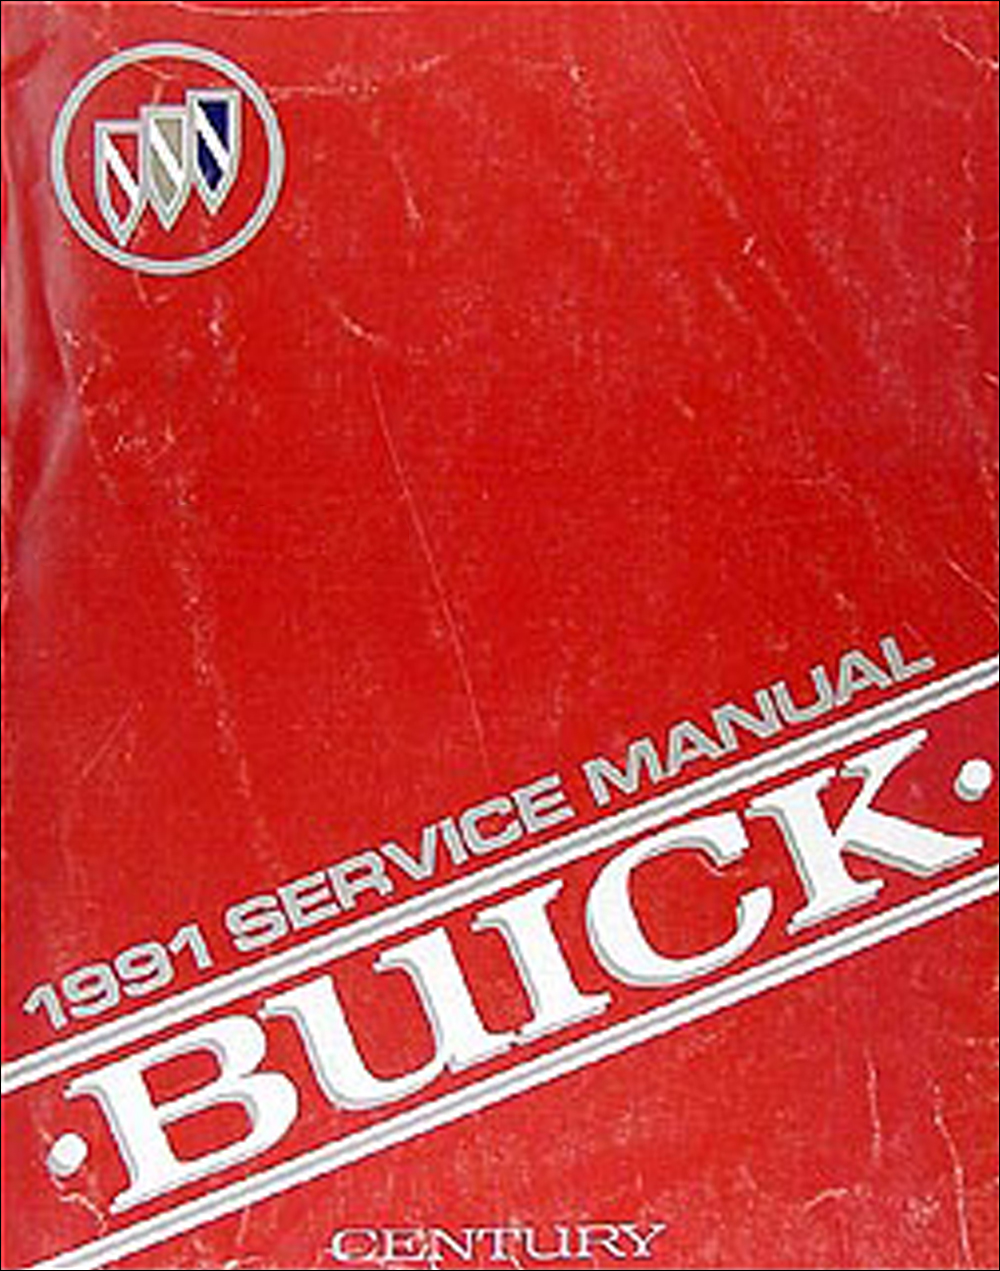 1991 Buick Century Repair Shop Manual Original Alfa Romeo Manuals